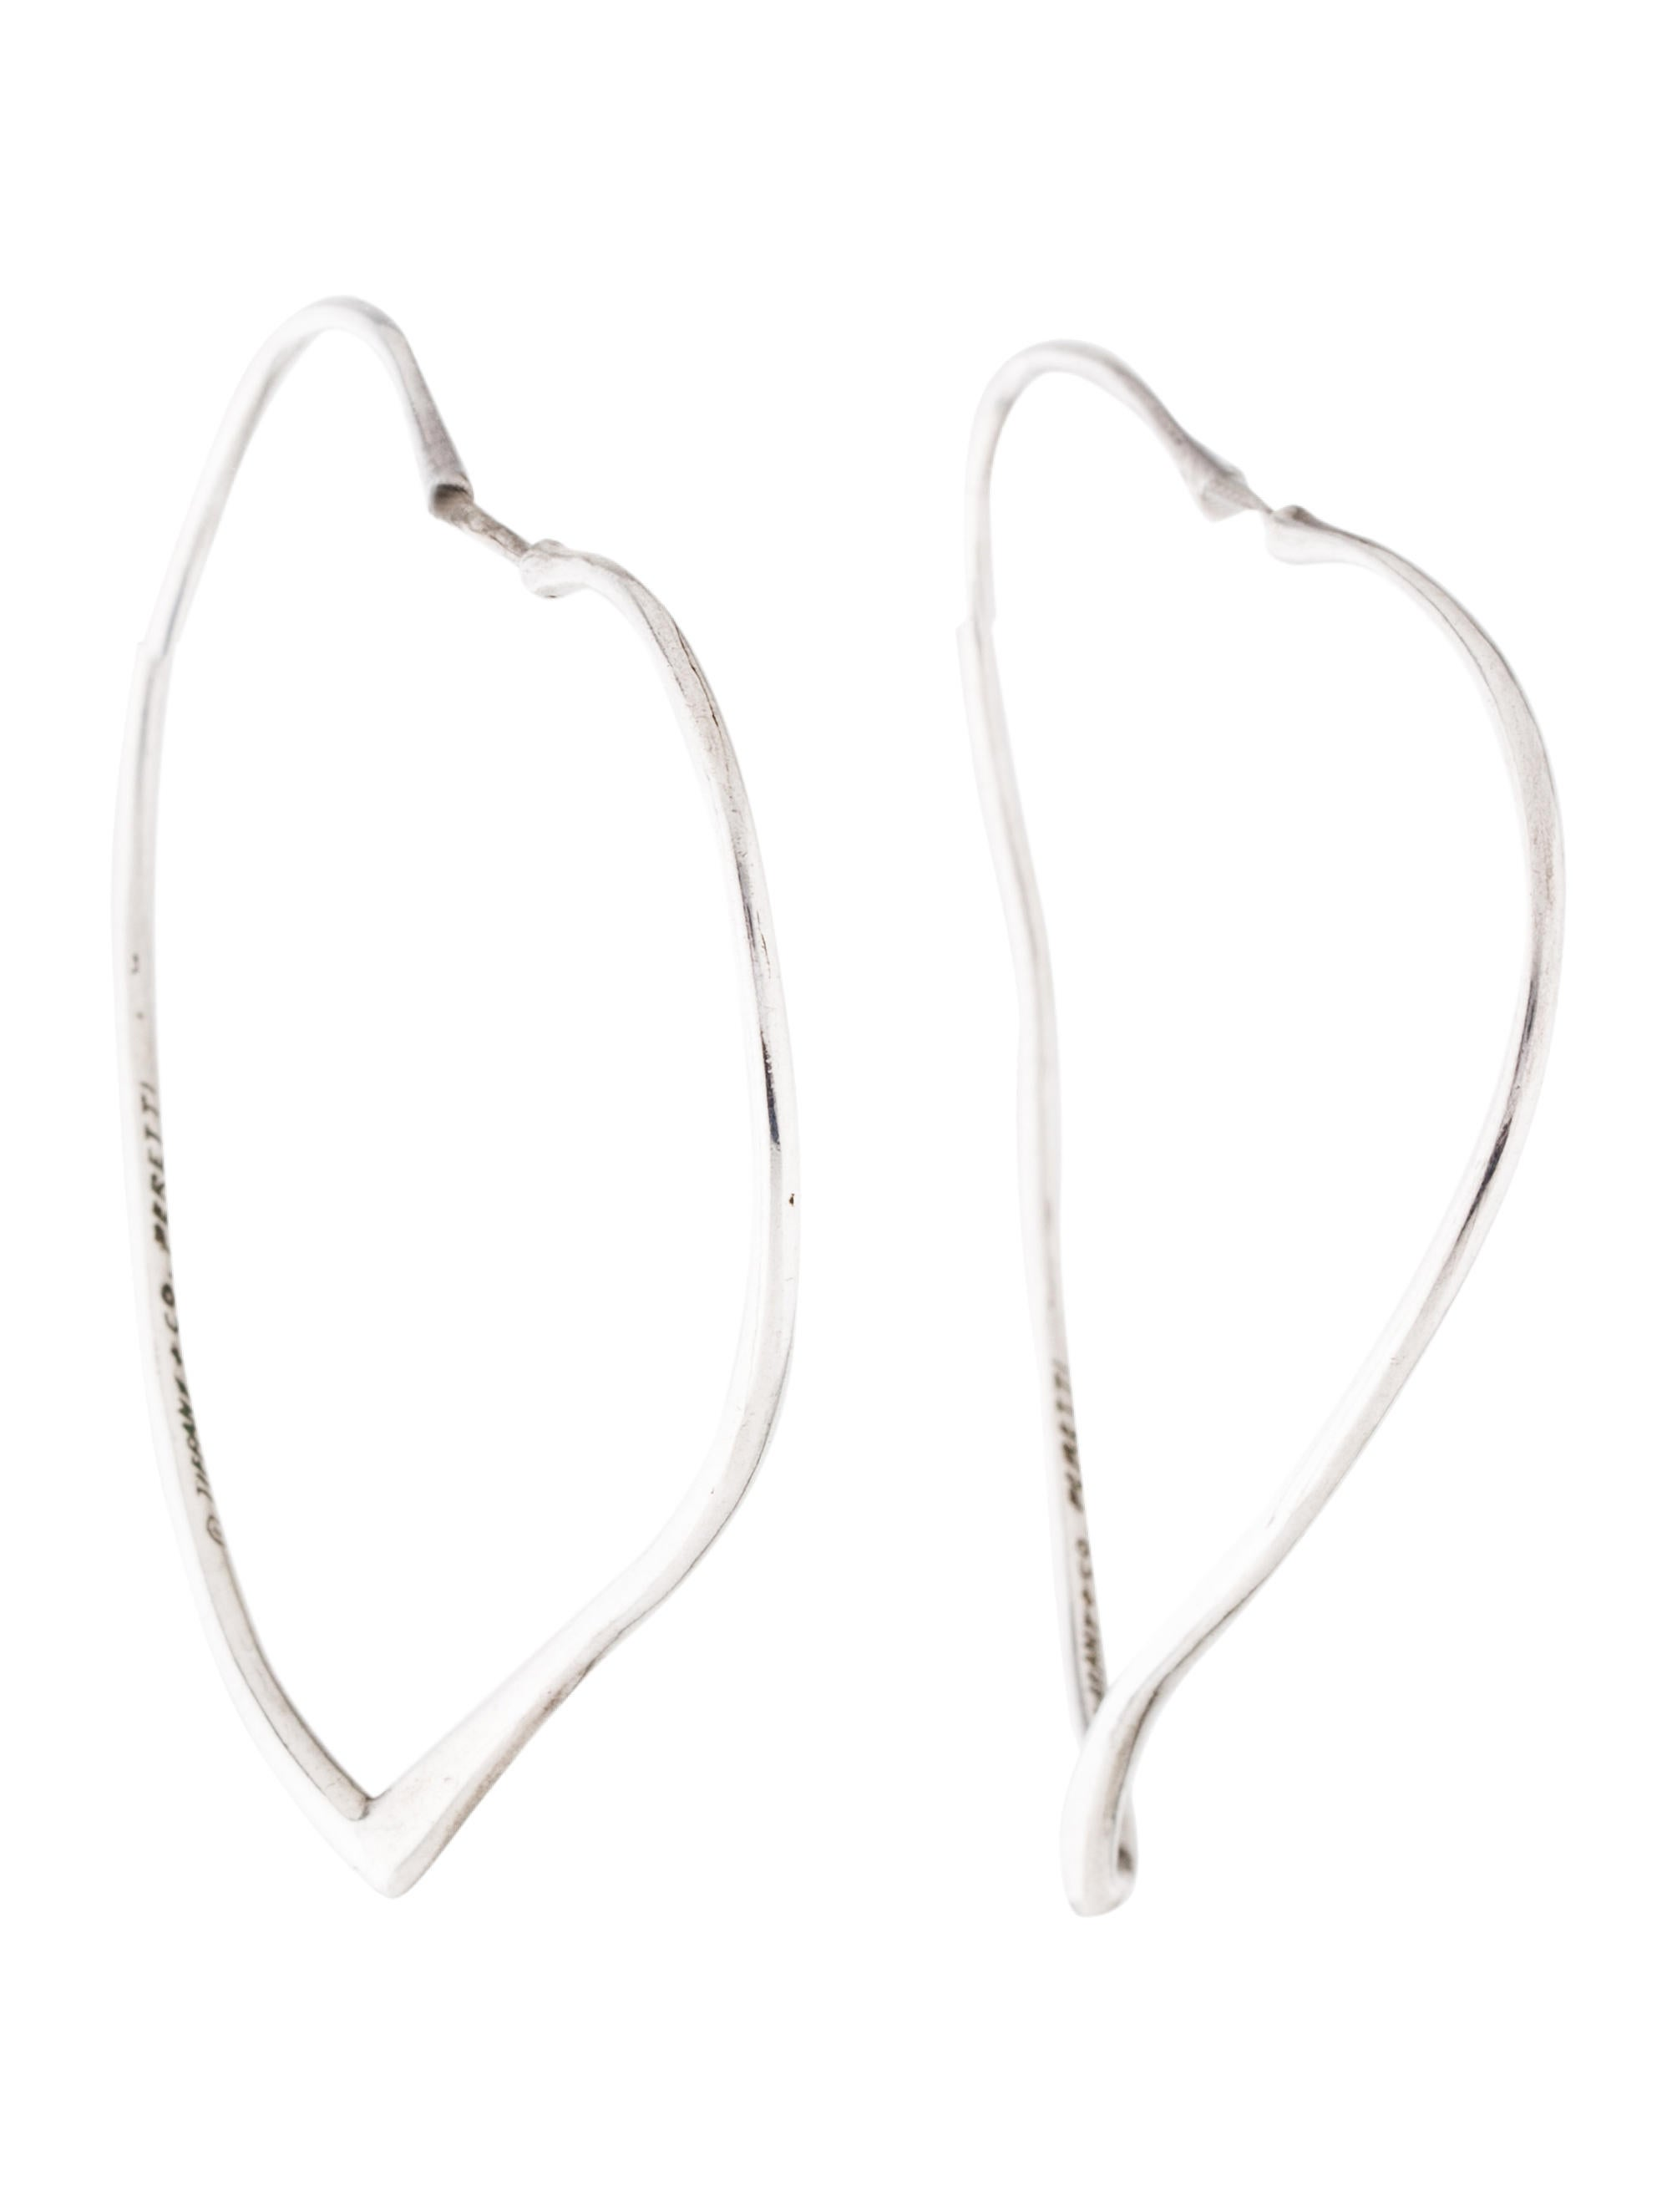 a7179fb90 Tiffany & Co. Open Heart Hoop Earrings - Earrings - TIF95564 | The ...